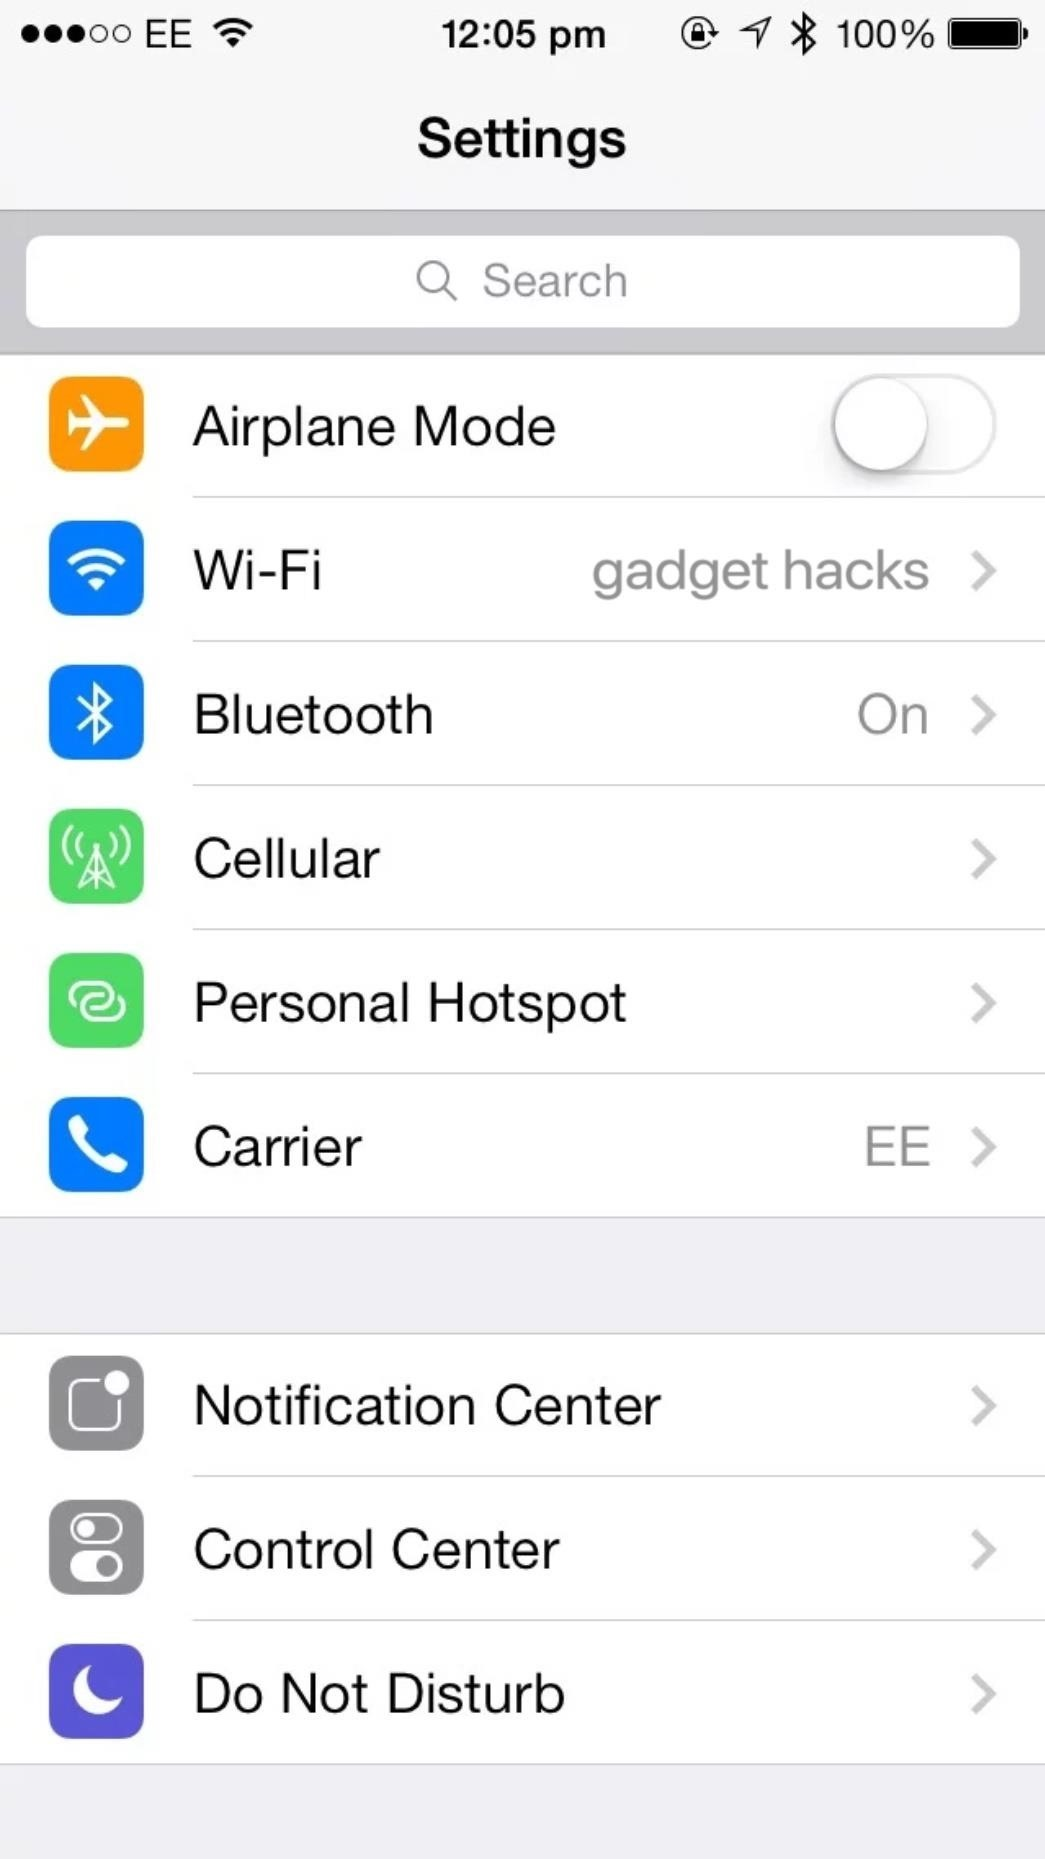 60 iOS Features Apple Stole from Jailbreakers « iOS & iPhone